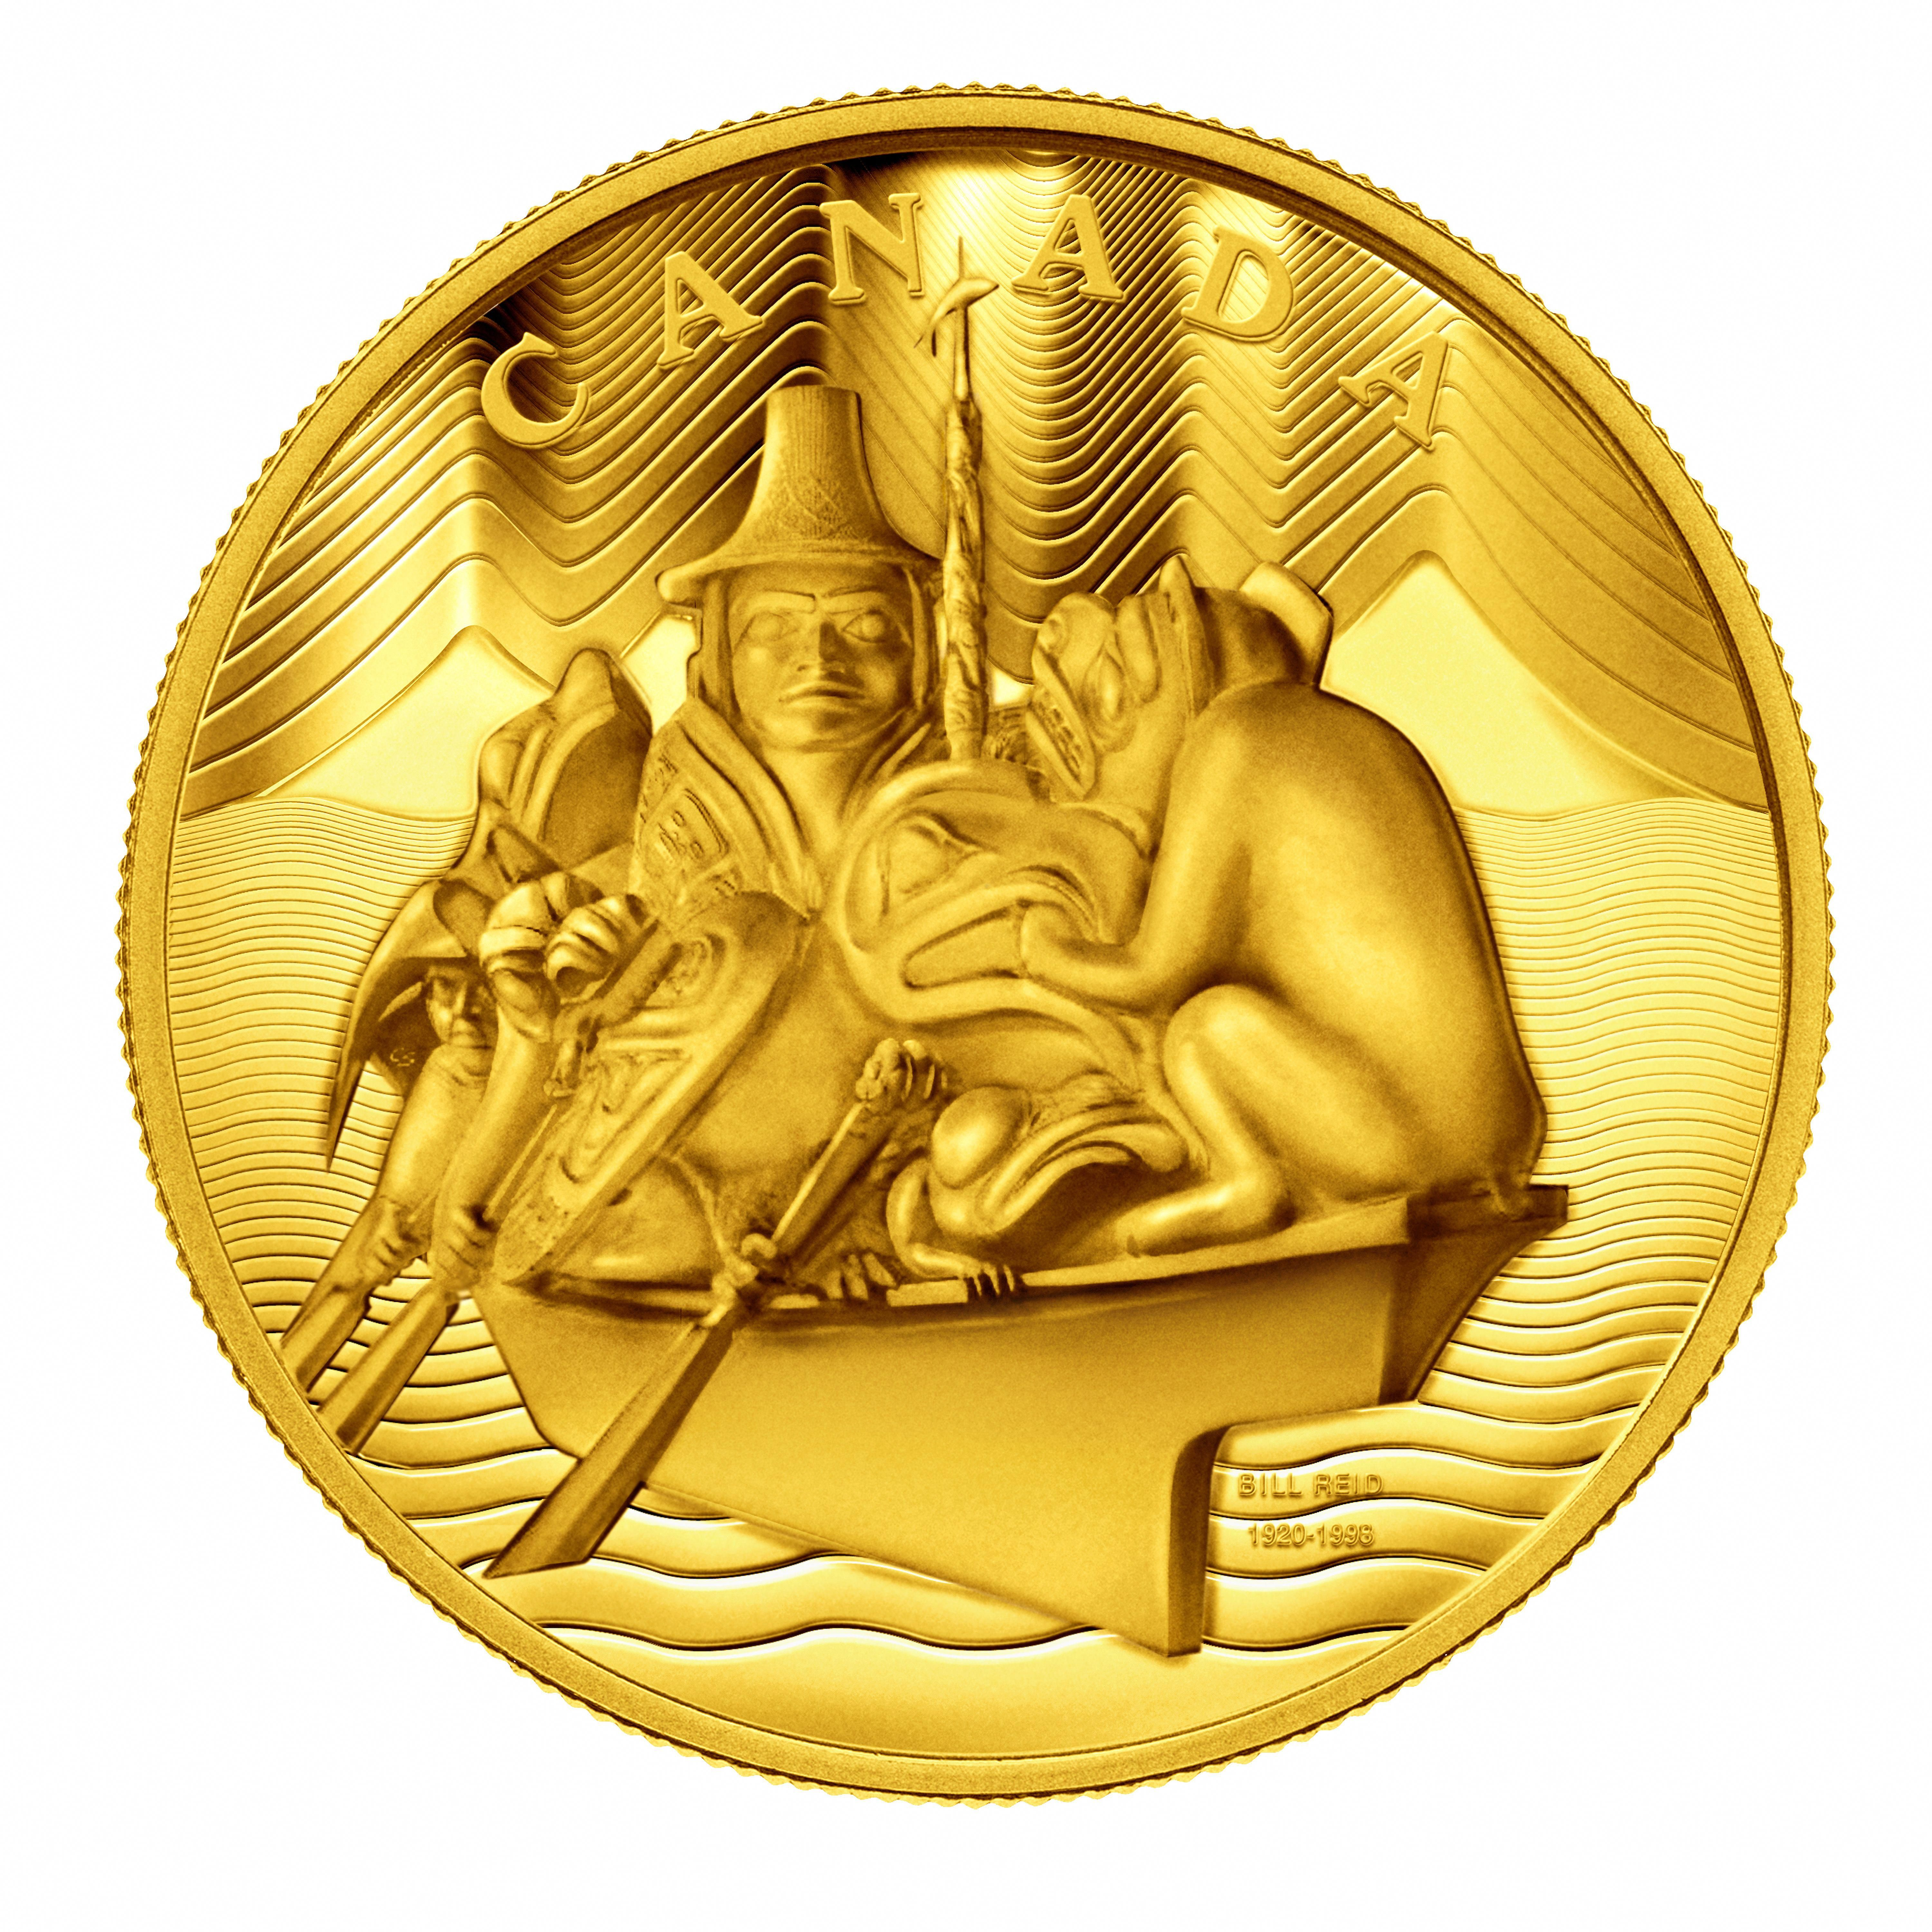 The World S First 10 Kg 99 999 Pure Gold Coin Featuring The Spirit Of Haida Gwaii Design From Th Gold Bullion Coins Gold And Silver Coins Canadian Gold Coins